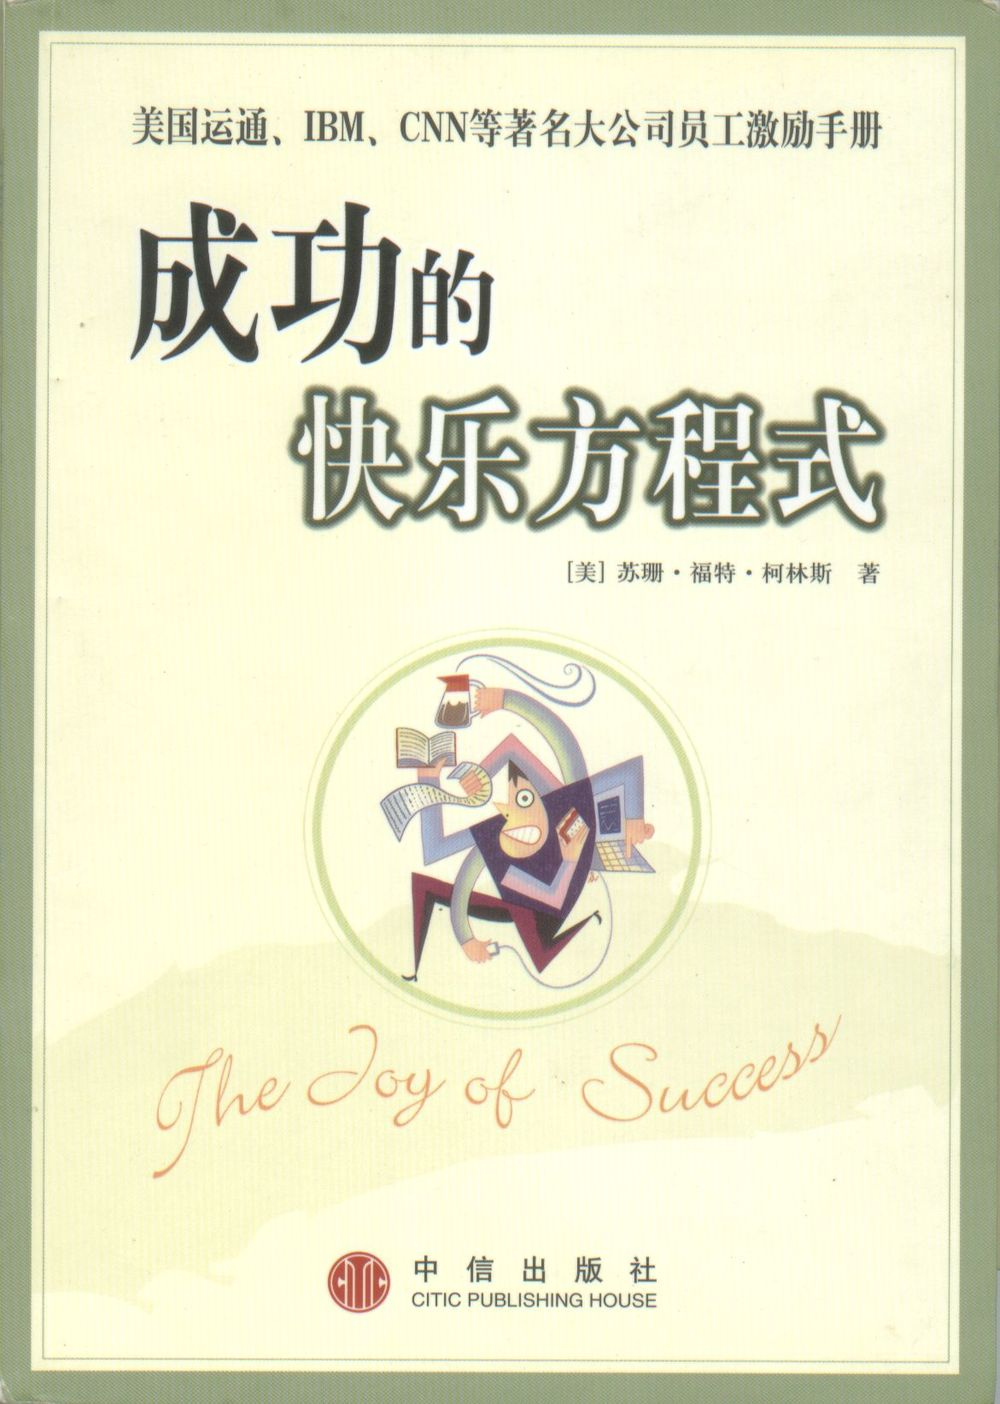 Copy of The Joy of Success in Chinese